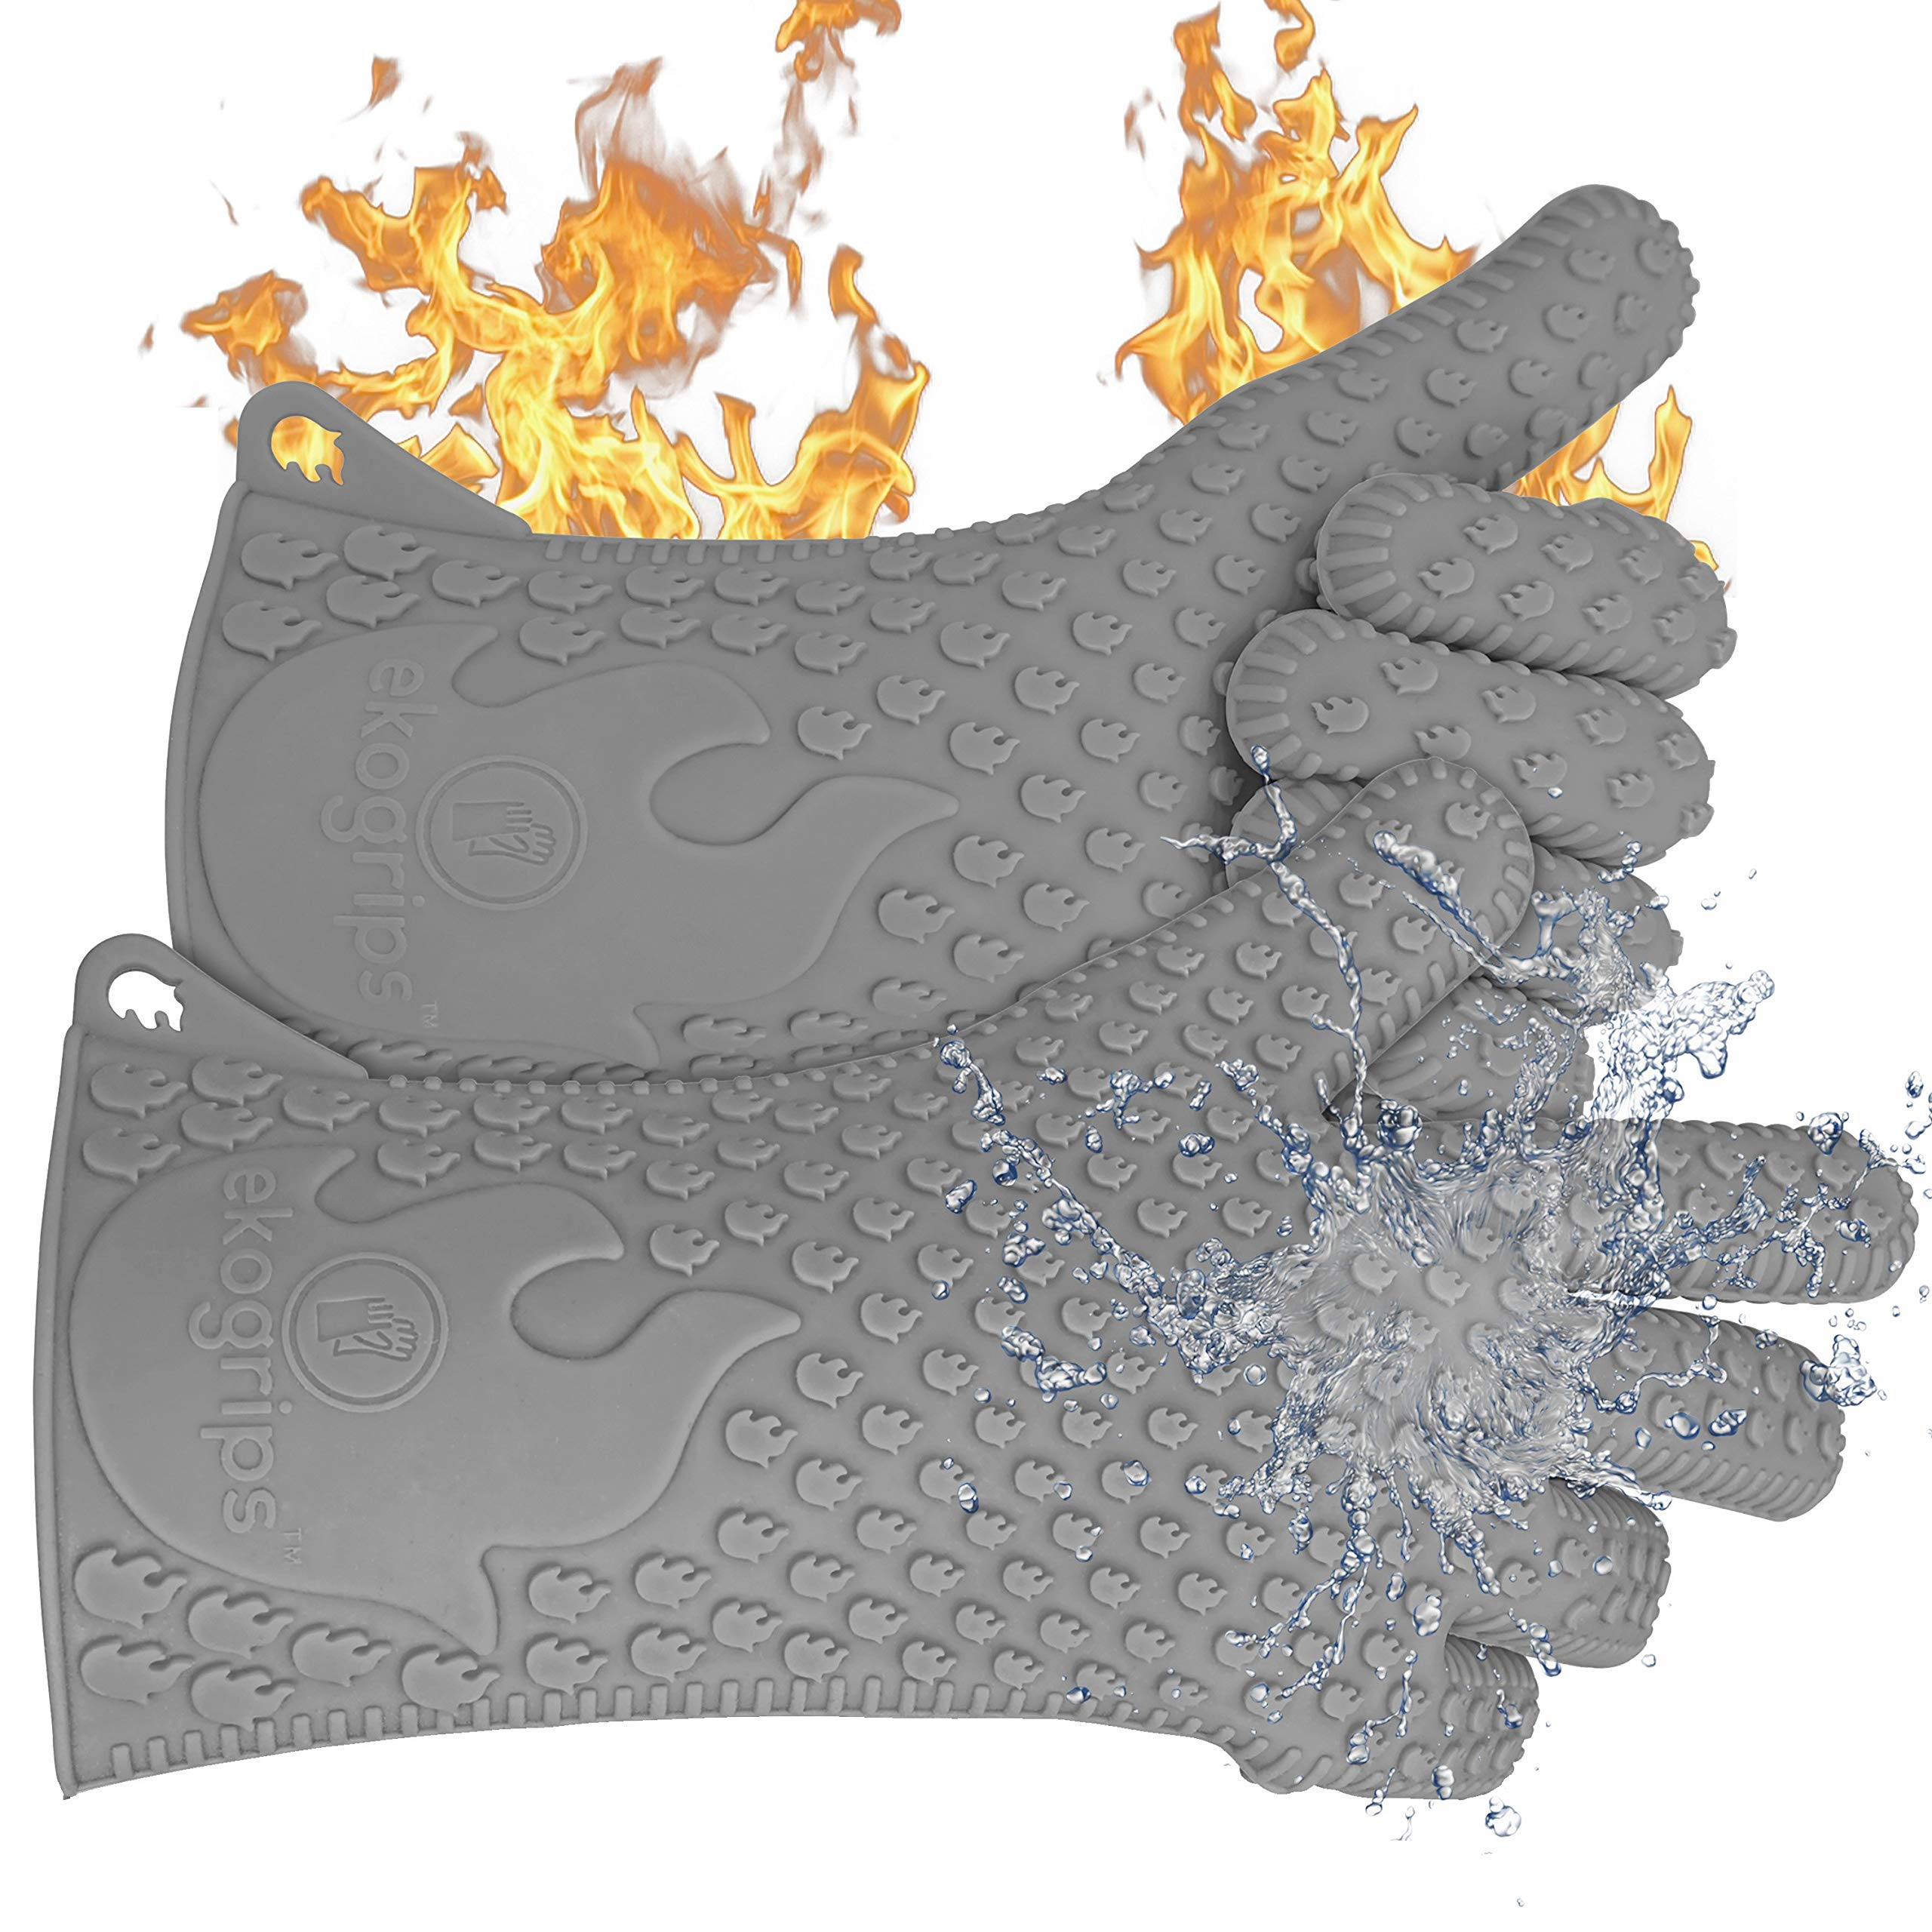 Jolly Green Products Ekogrips Premium BBQ Oven Gloves | Best Versatile Heat Resistant Grill Gloves | Insulated Silicone Oven Mitts for Grilling | Waterproof | Forearm Protection | Grey, L/XL